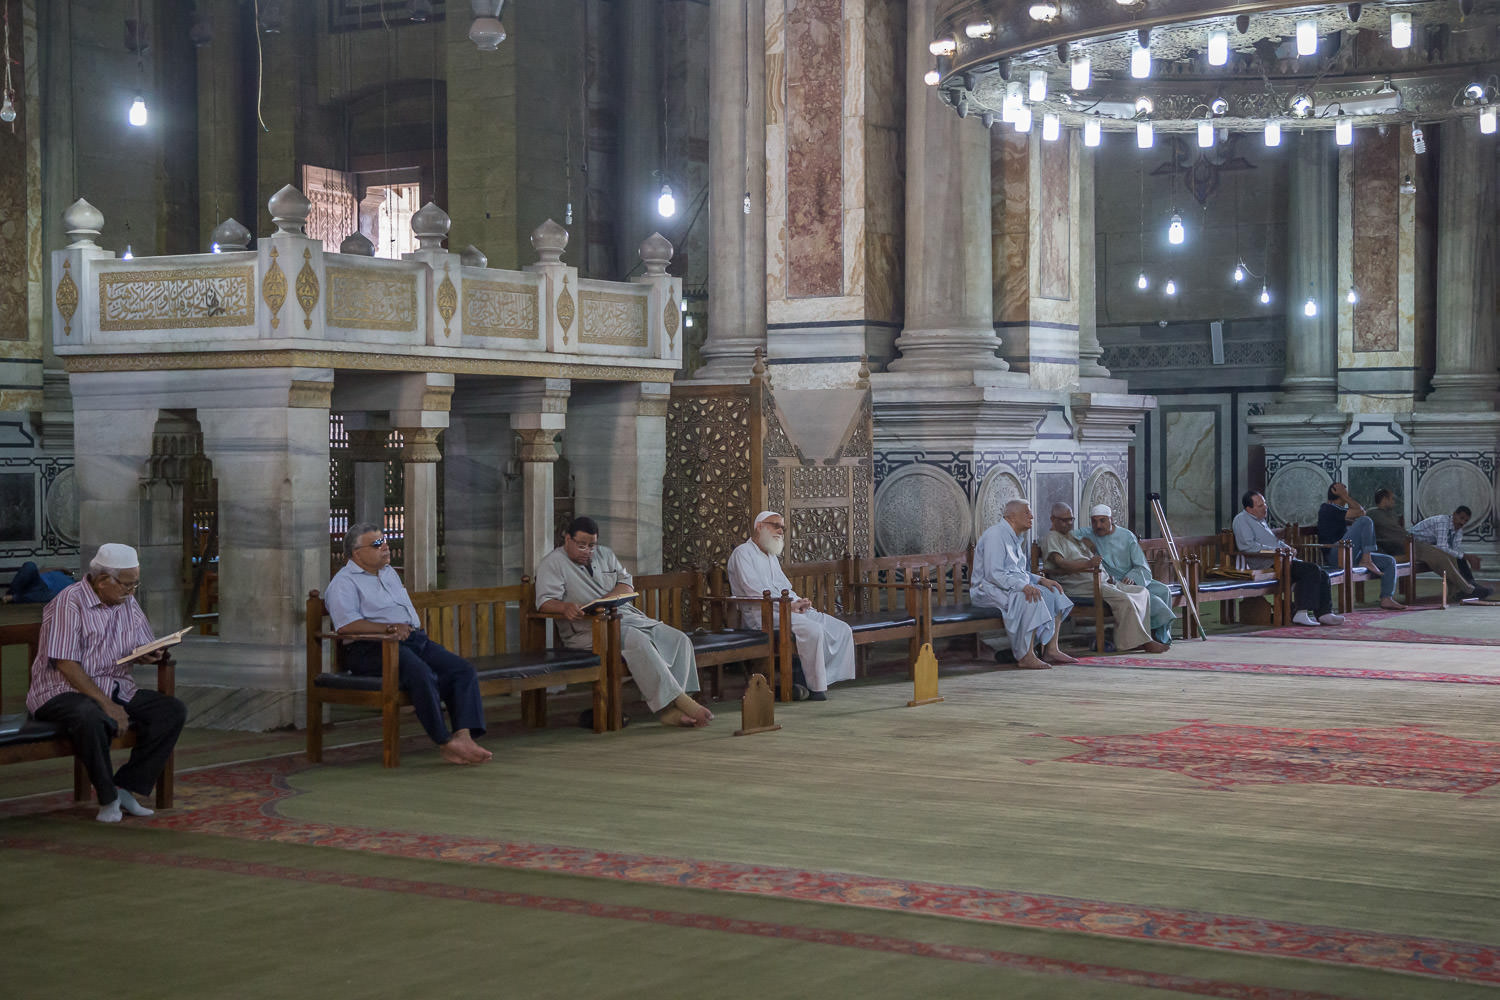 In a Mosque